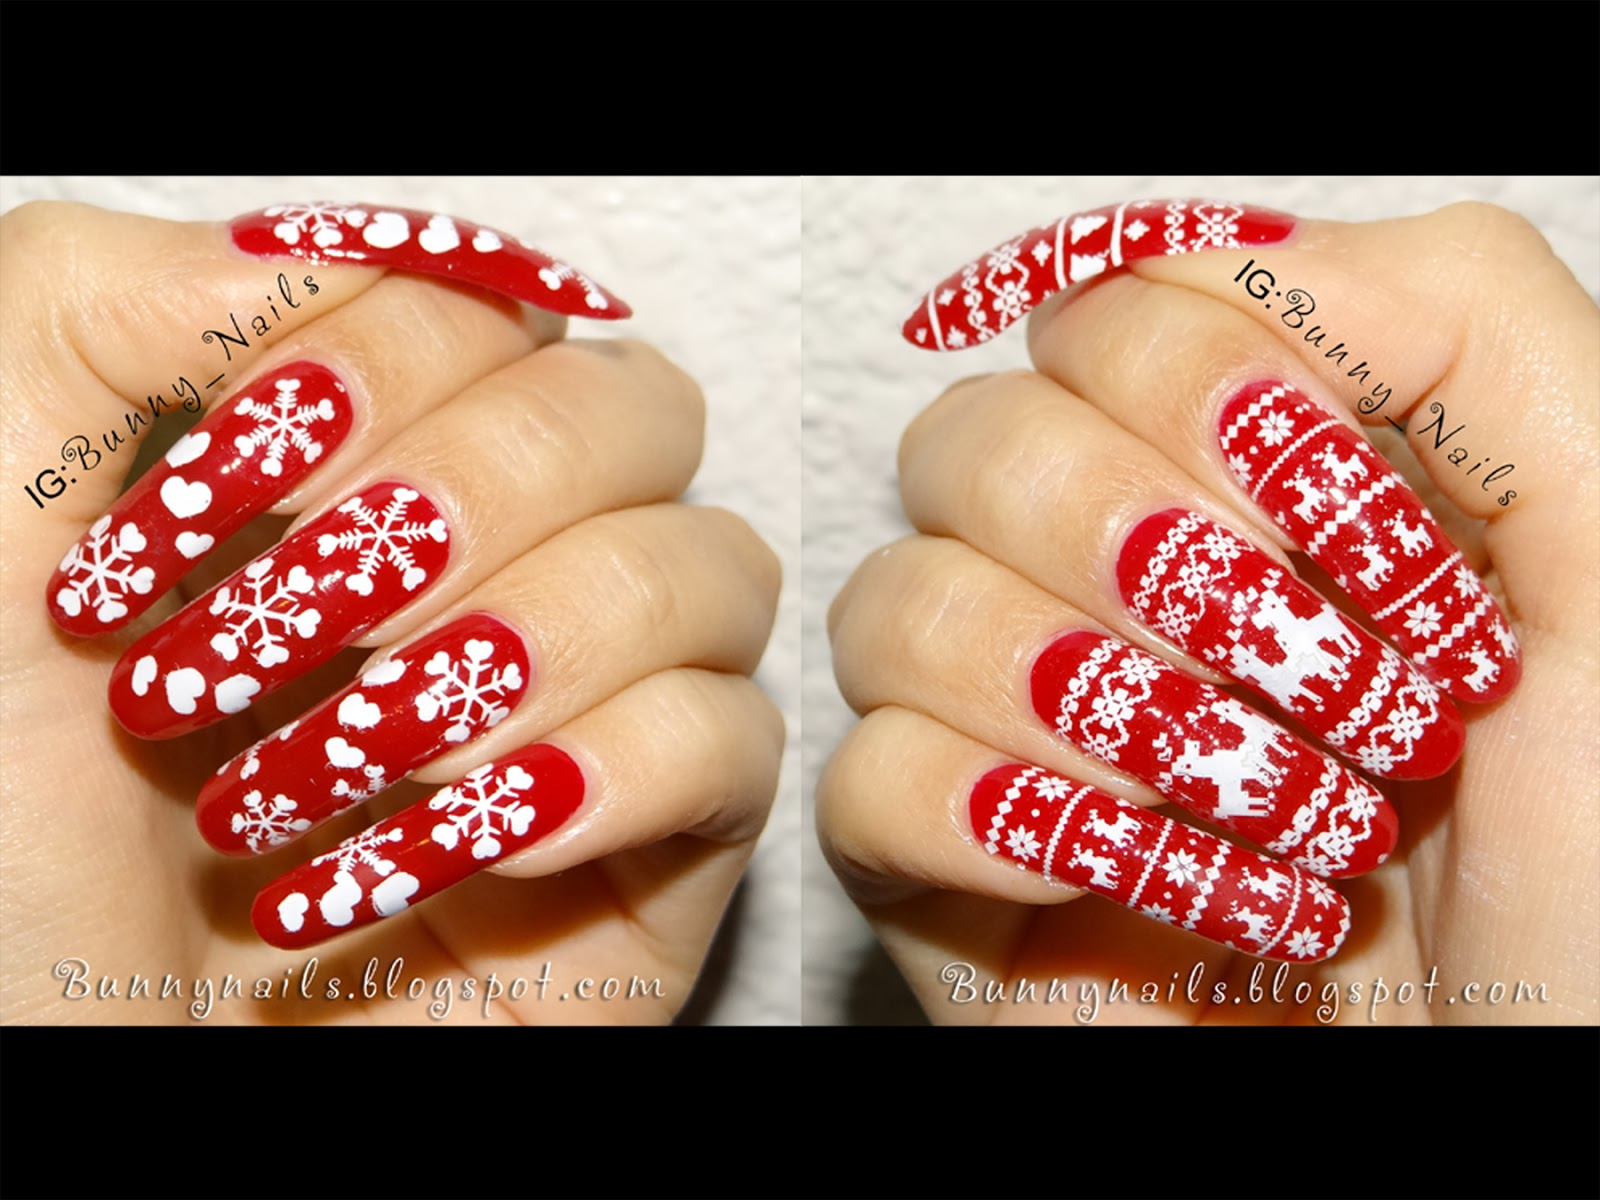 Bunny Nails: Merry Christmas! Nice and Naughty Nail Art